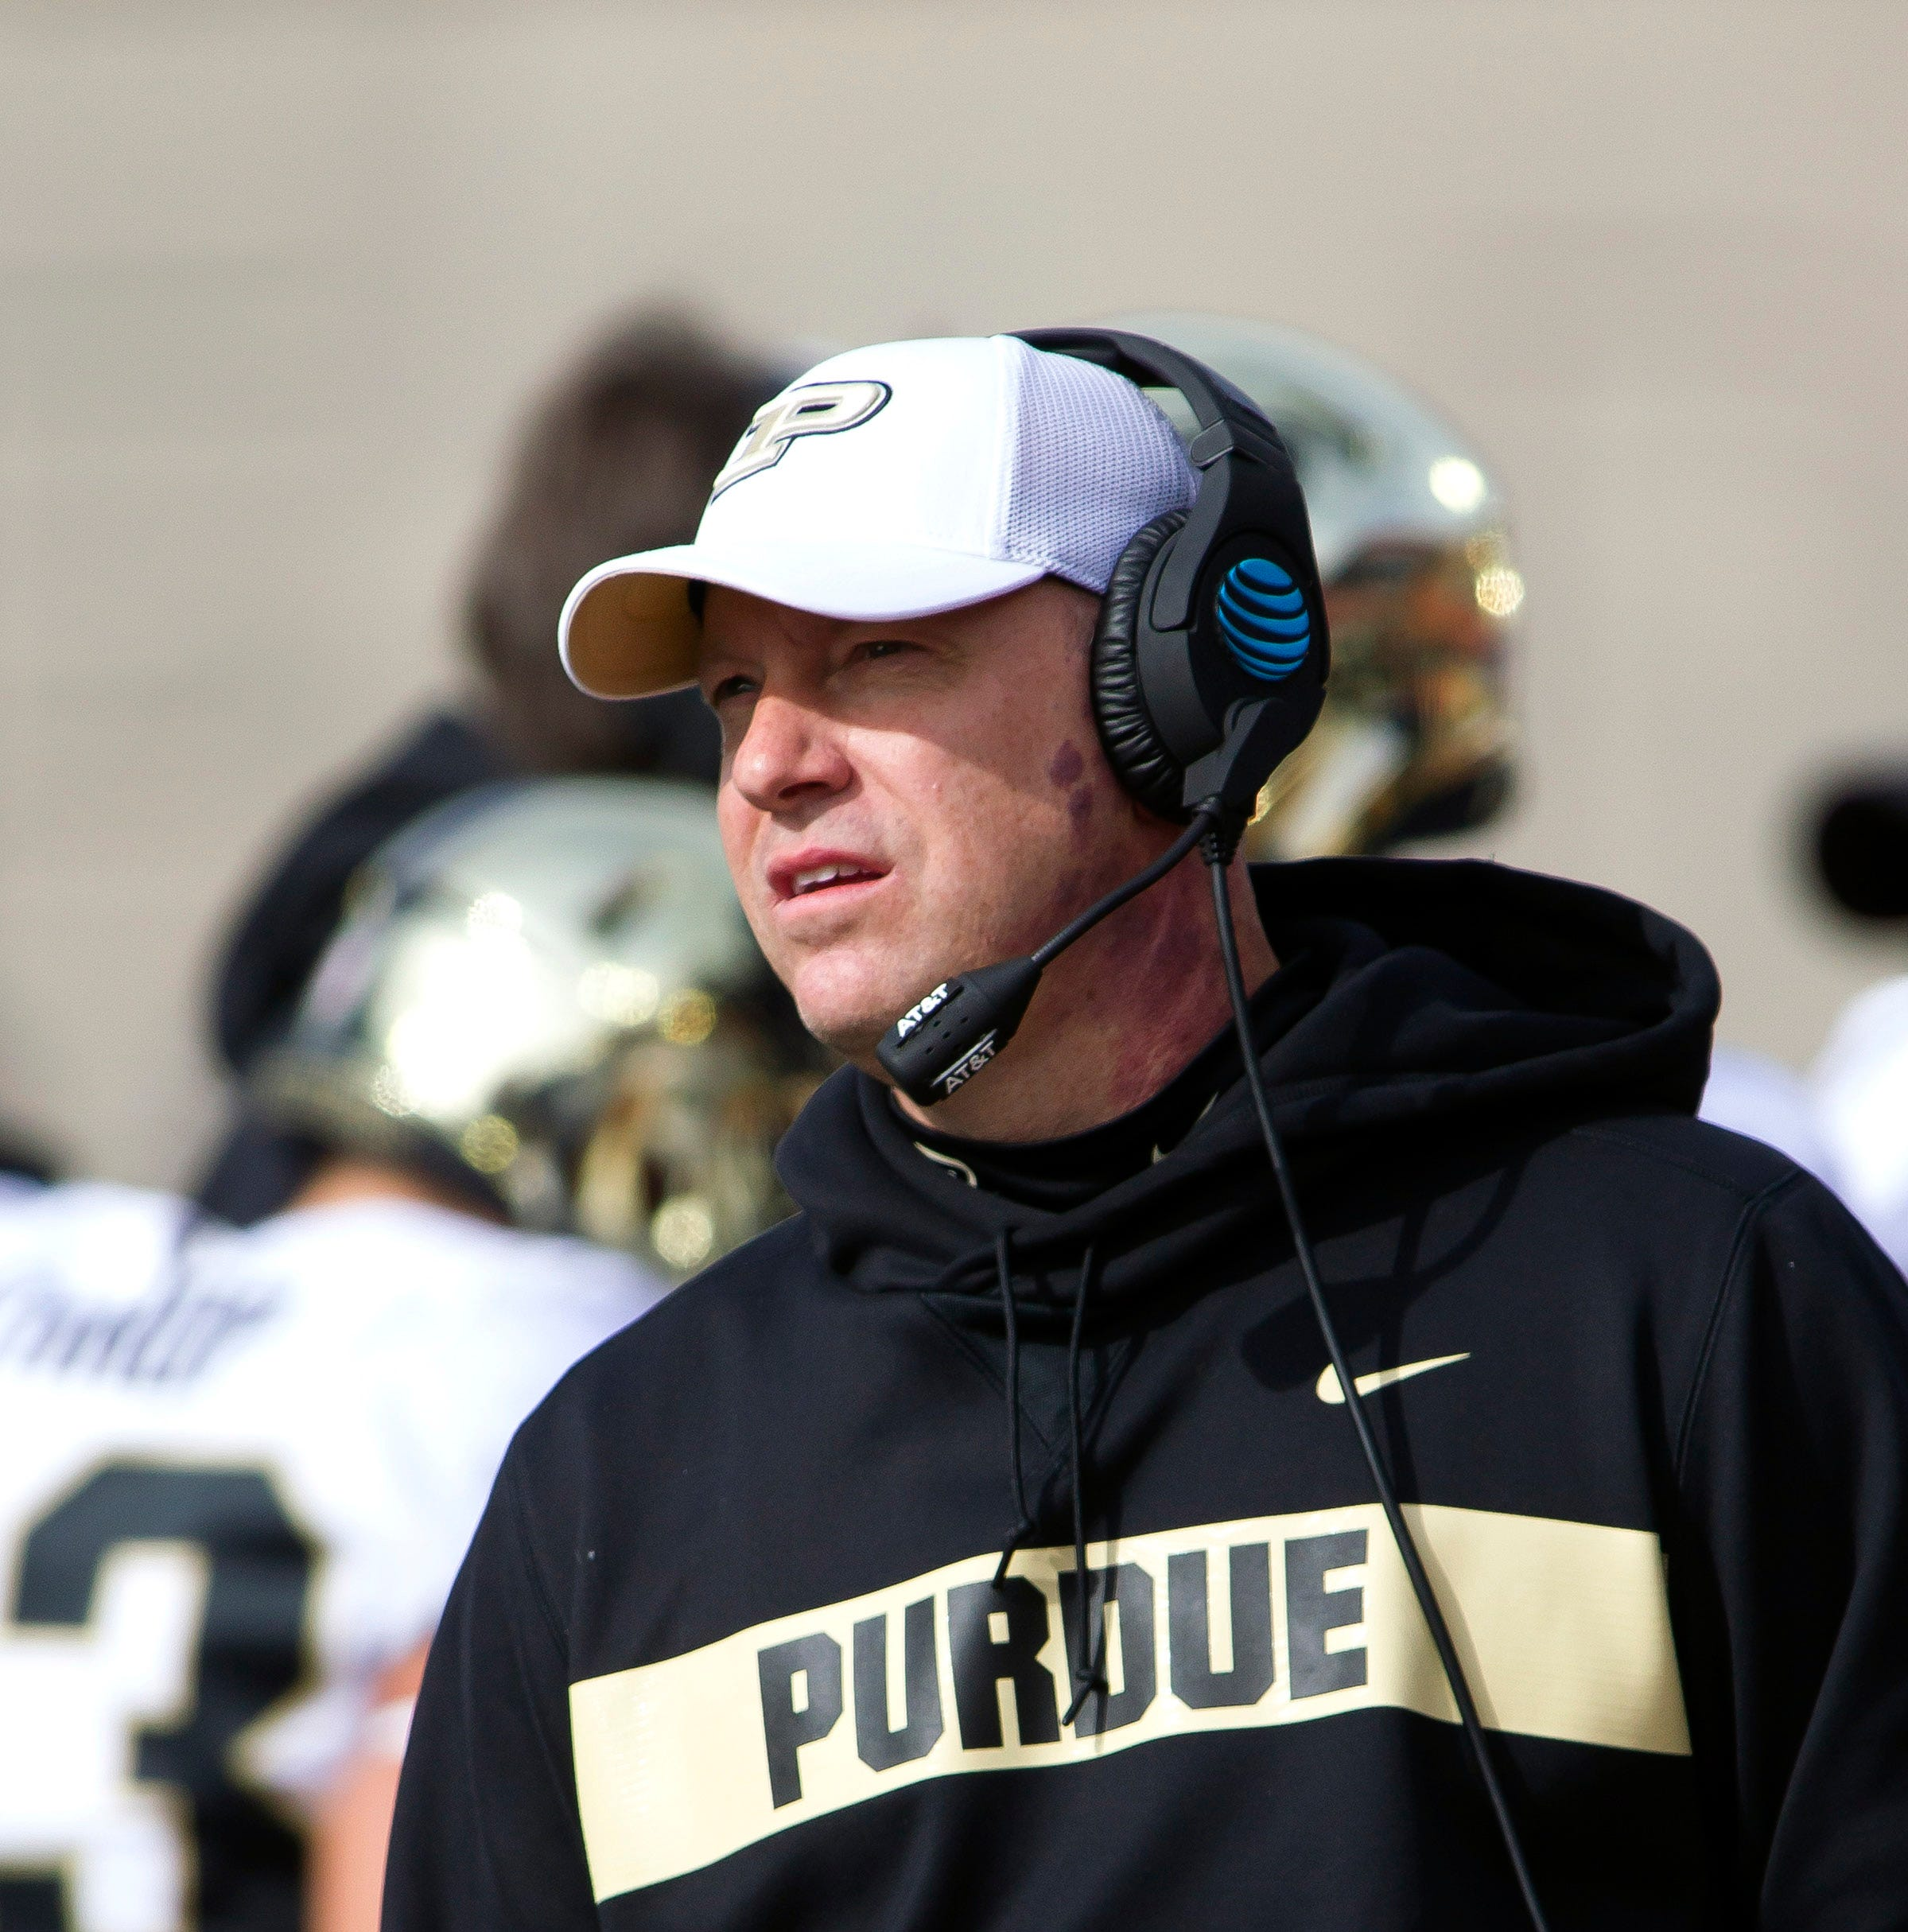 Purdue football coach Jeff Brohm says deal with Louisville 'completely false'